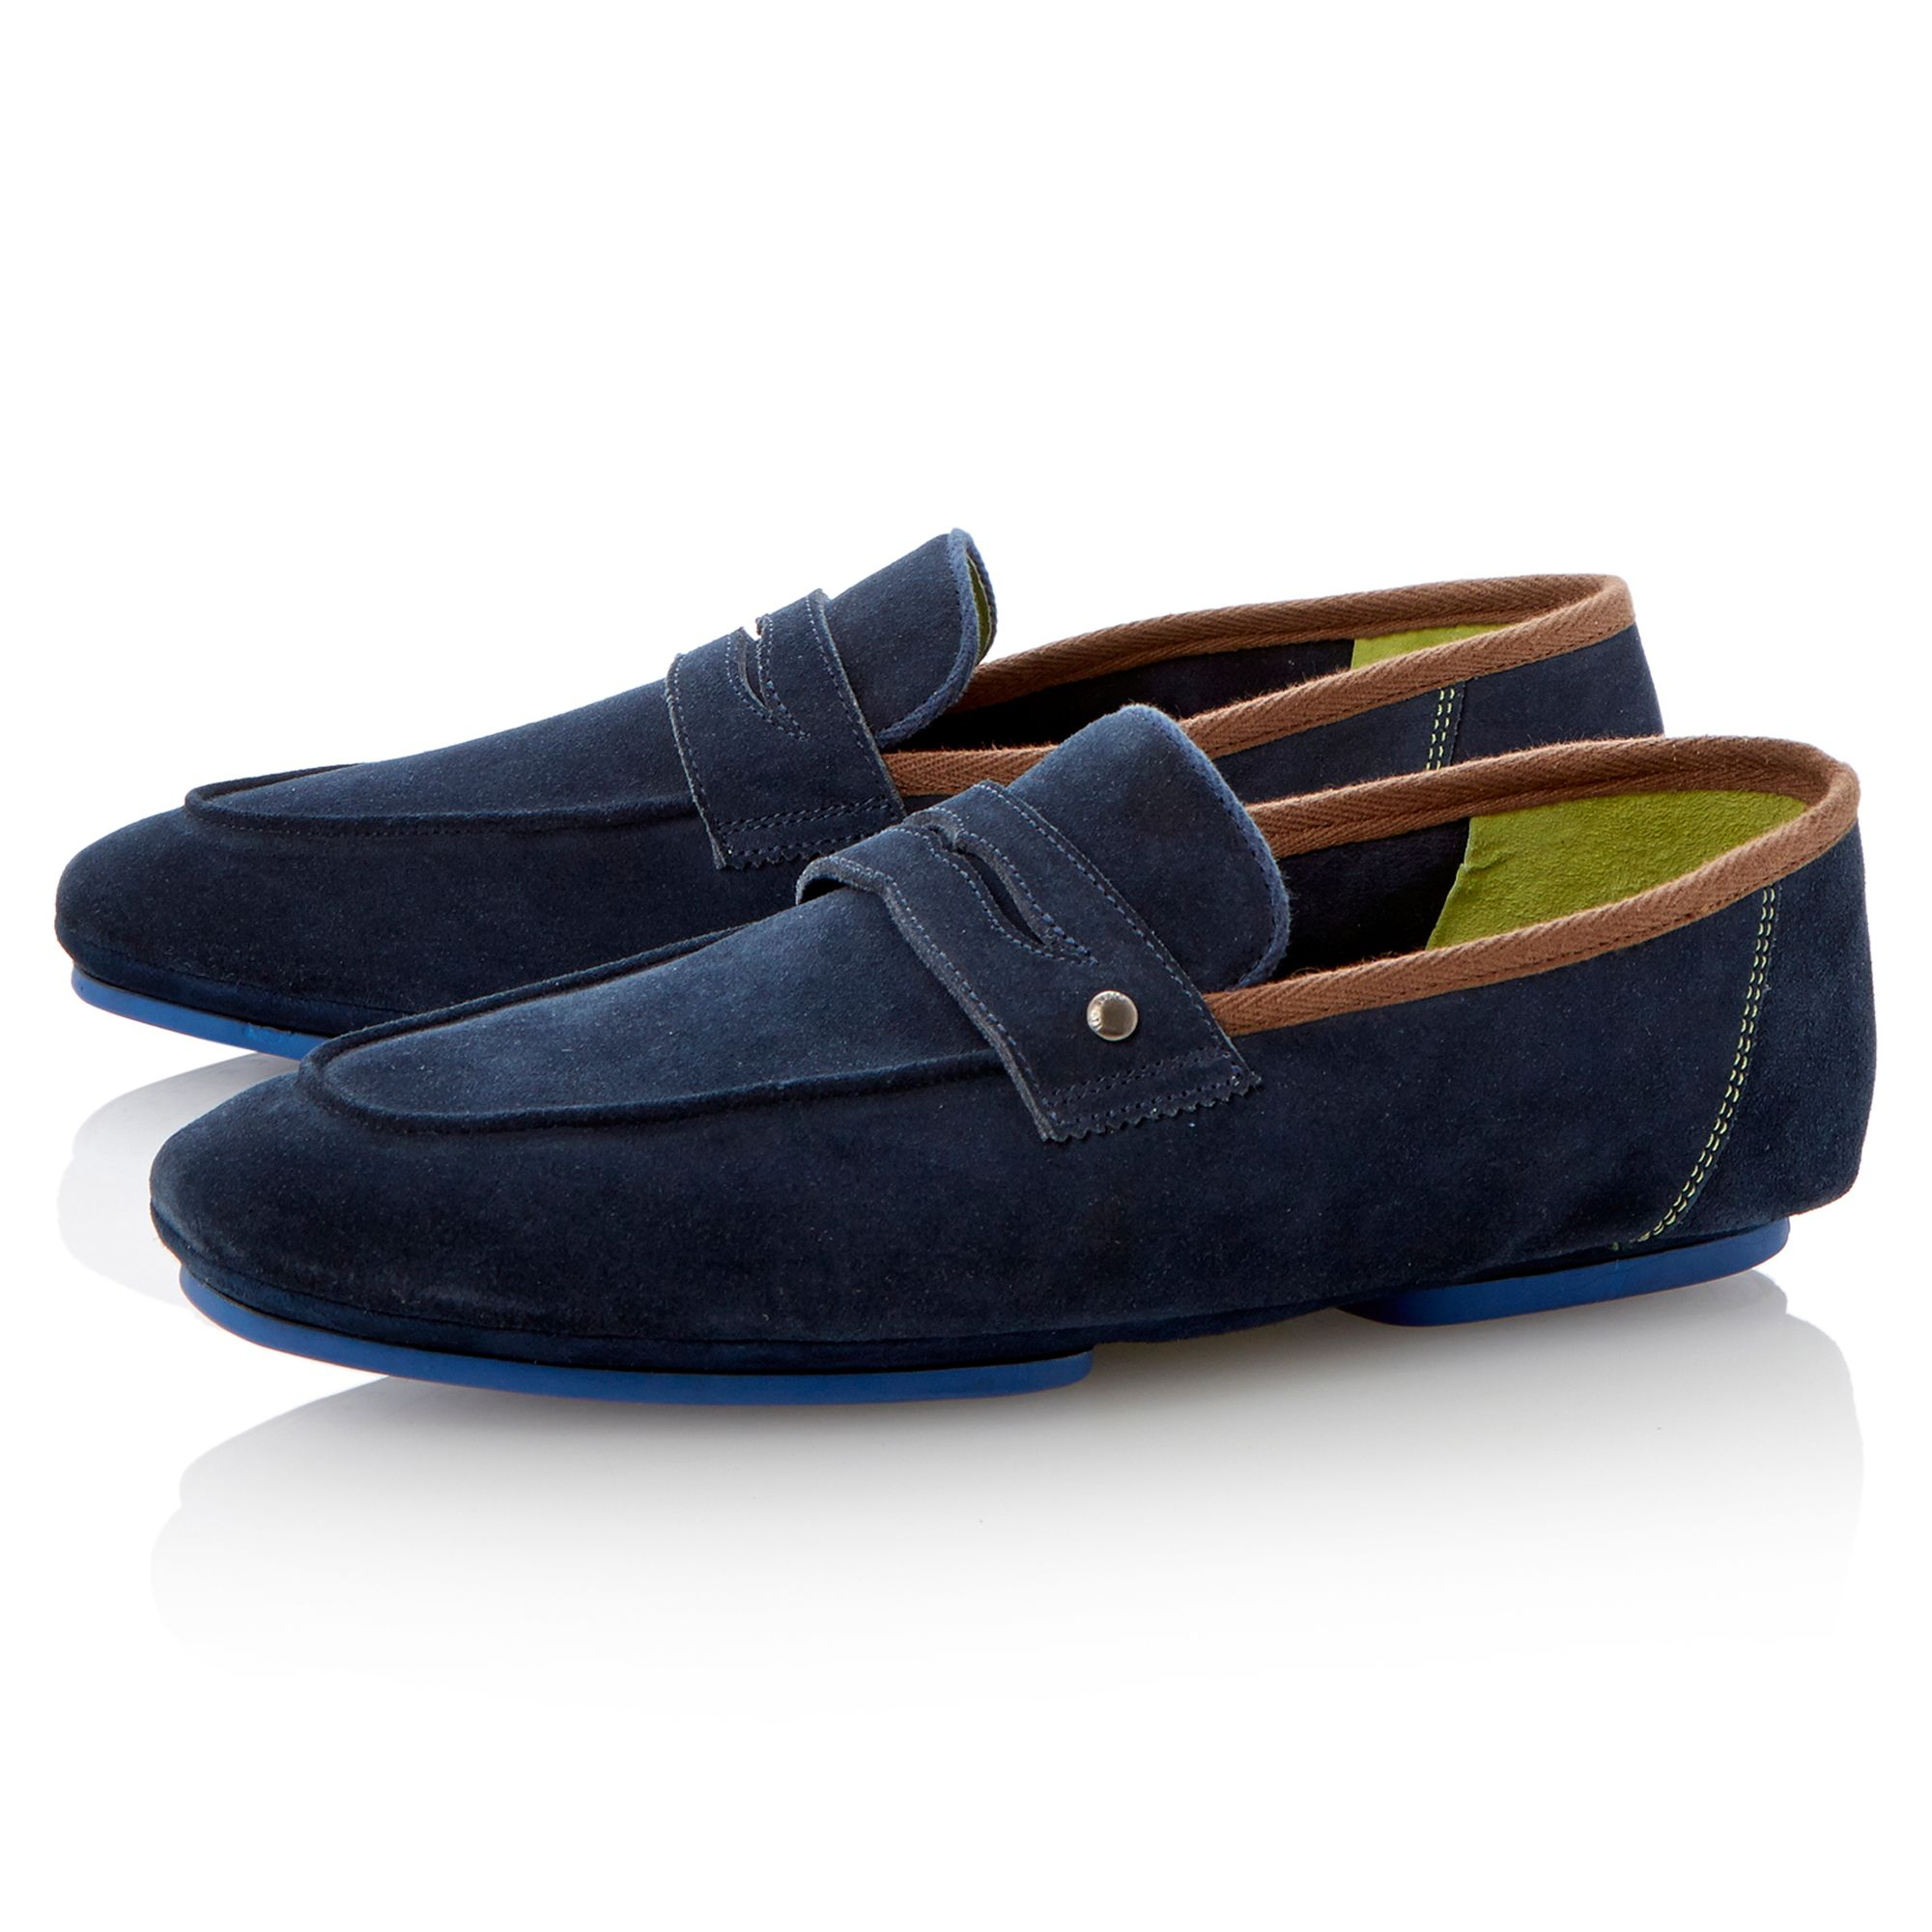 Smyyth unlined moccasin sandals